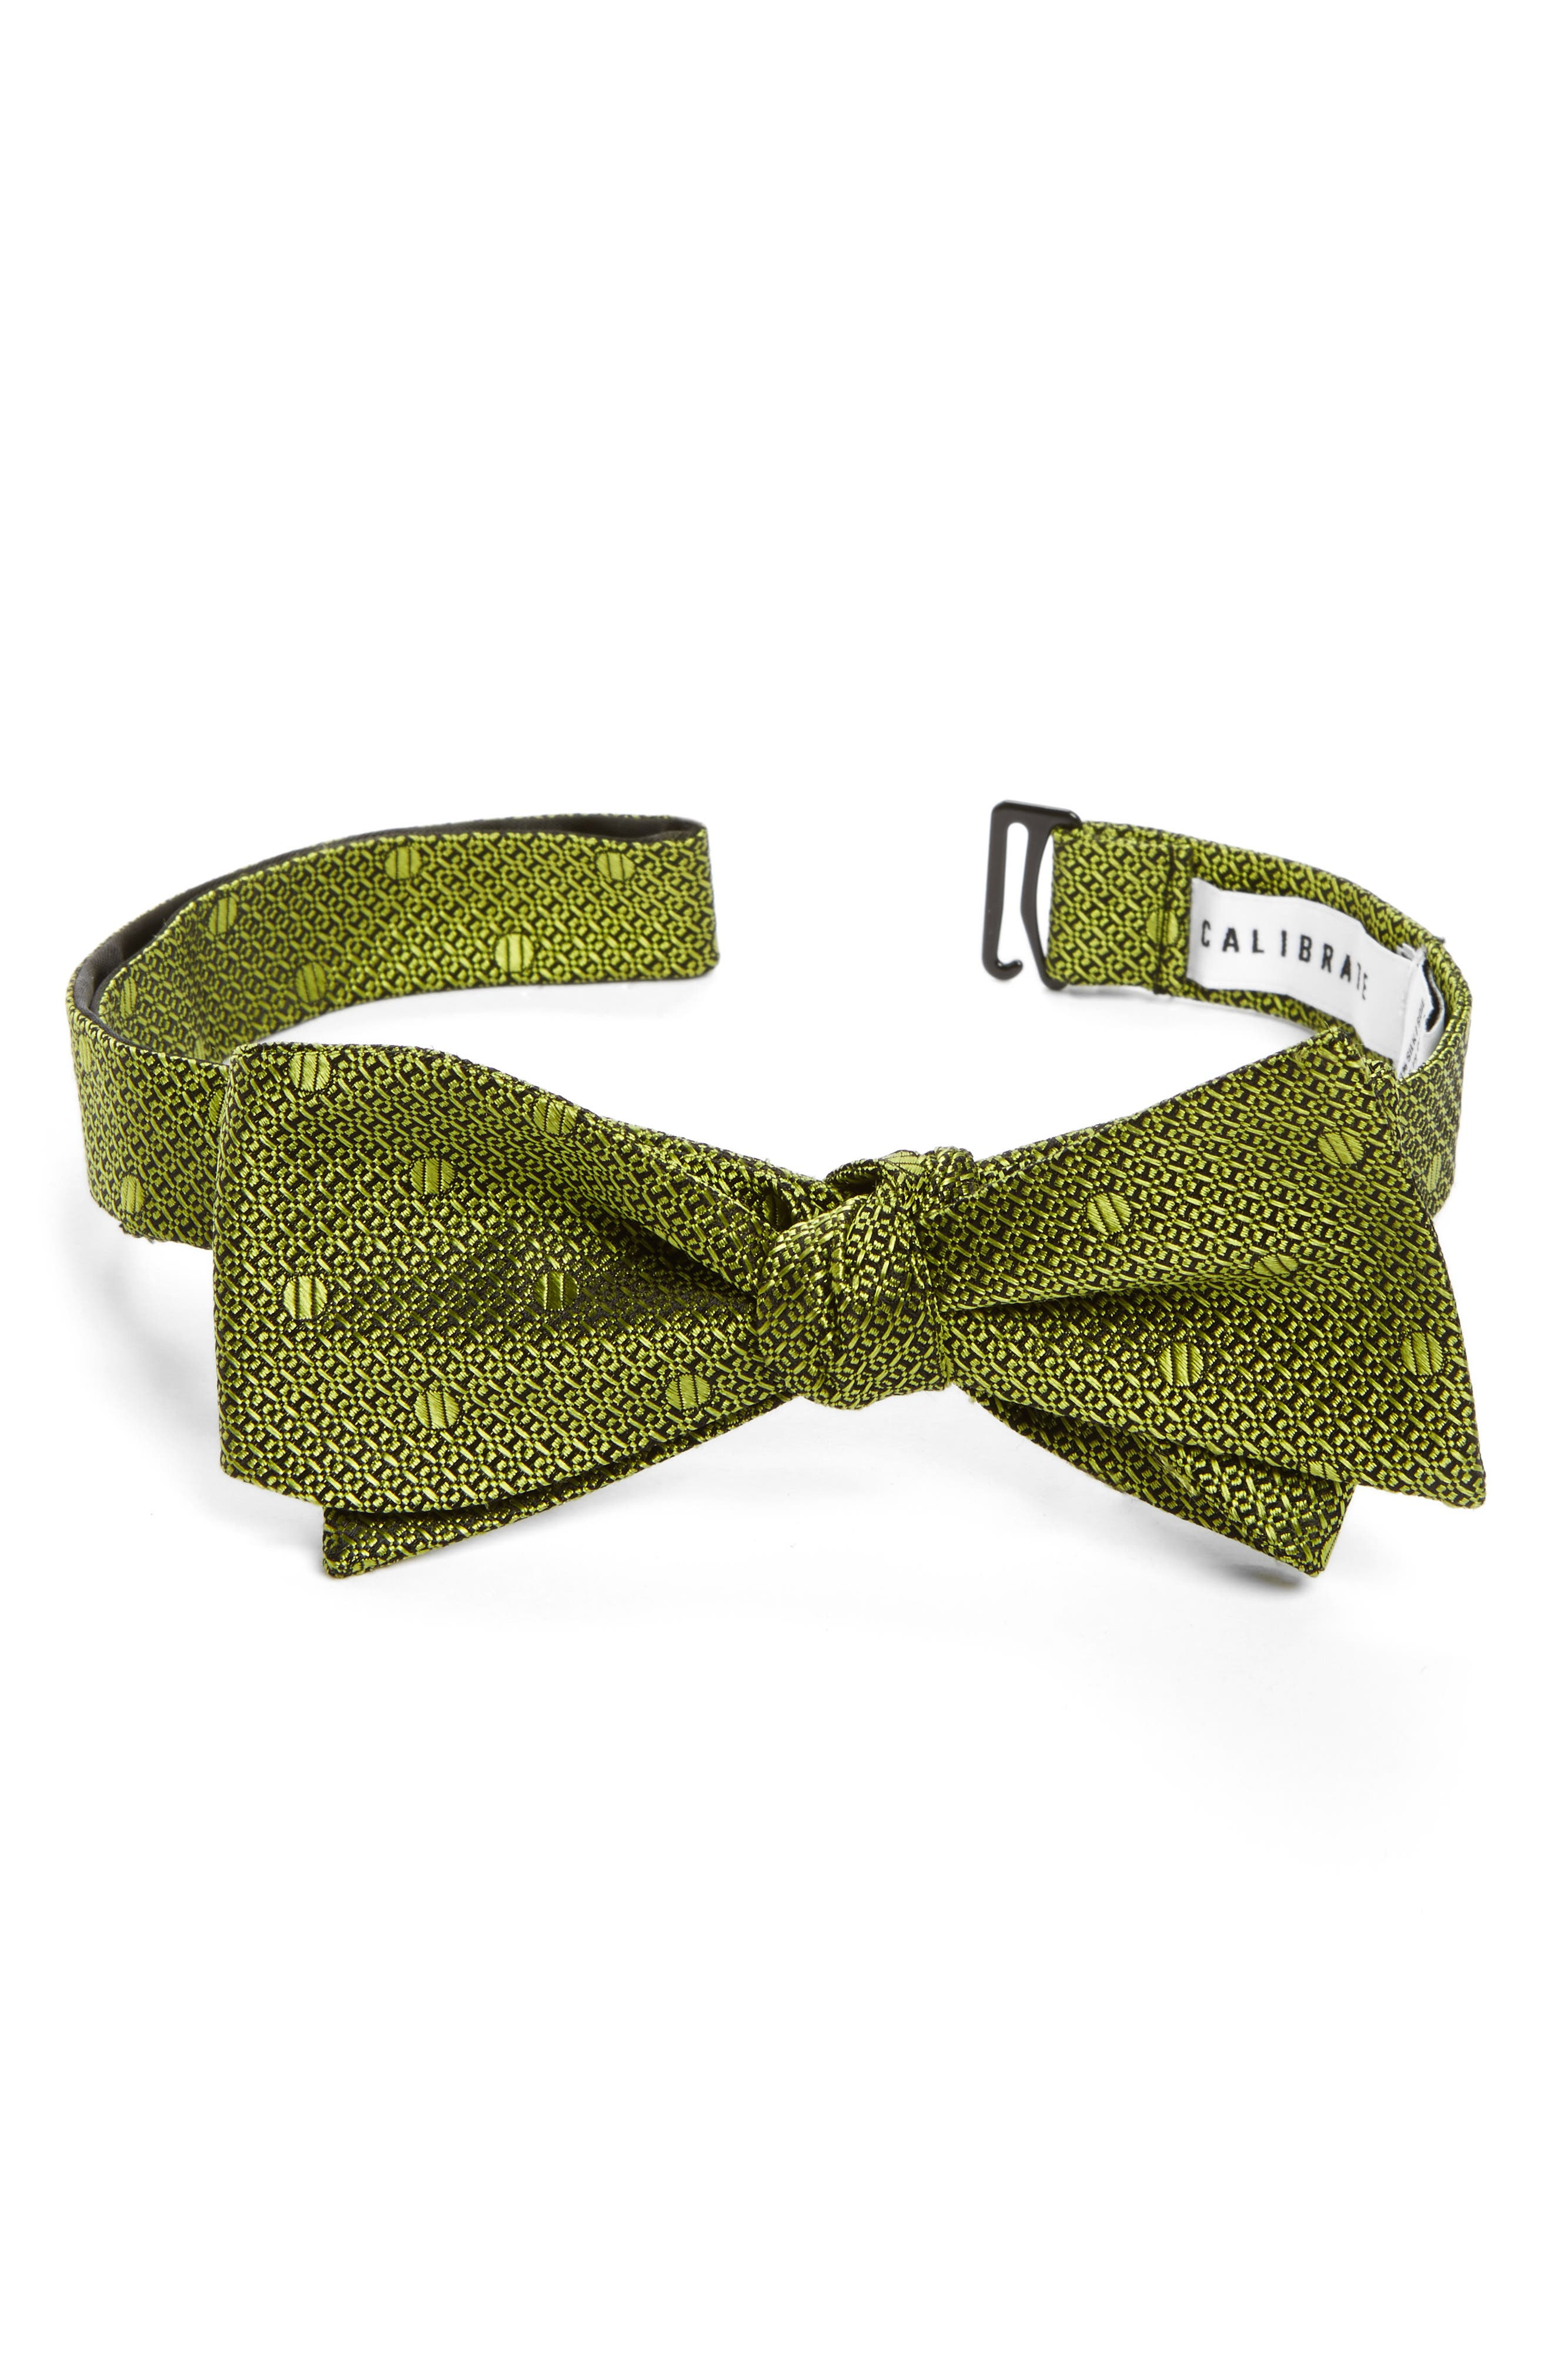 Textured Dot Silk Bow Tie,                             Main thumbnail 1, color,                             300